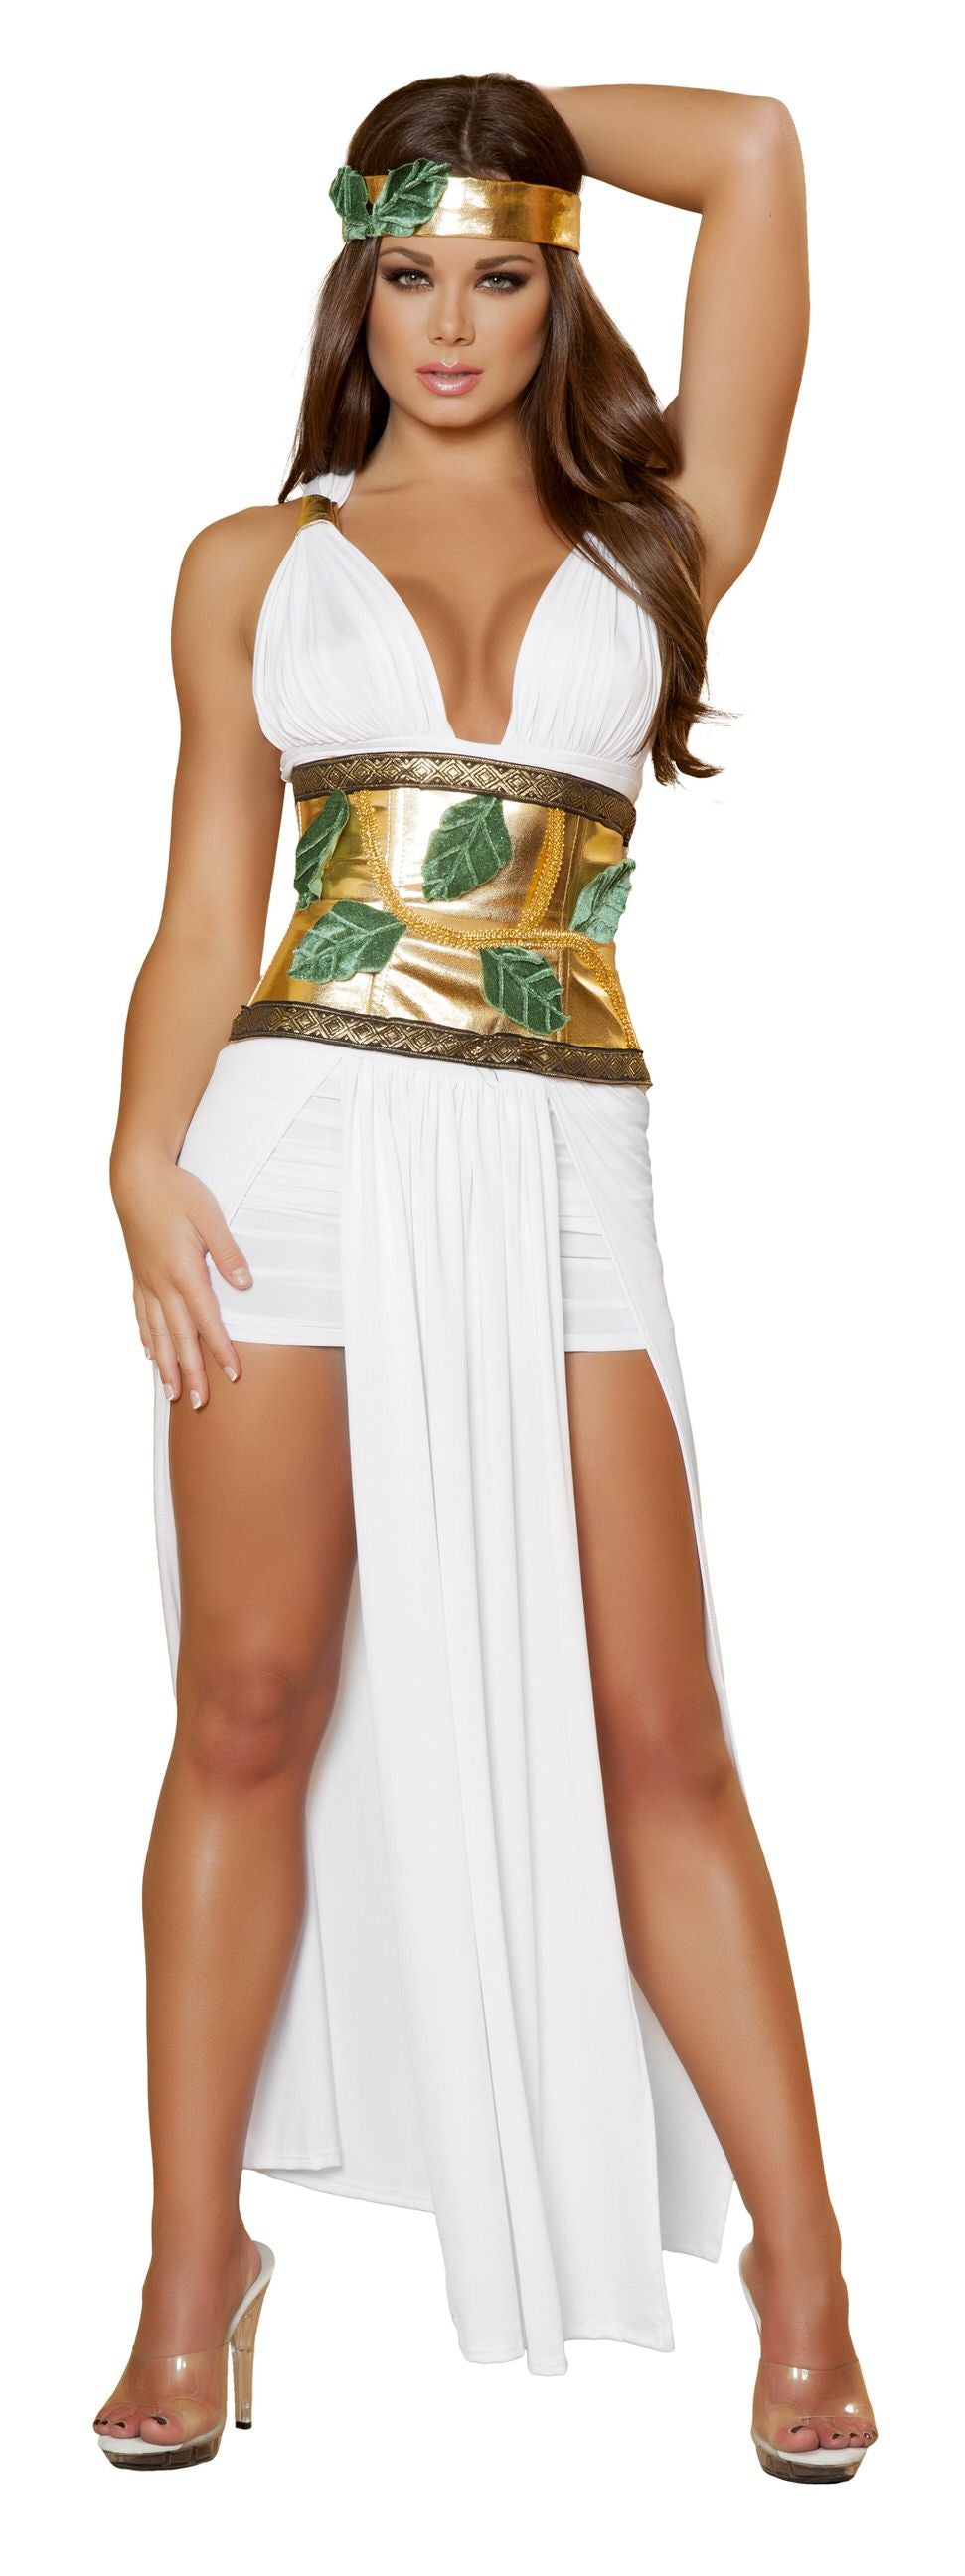 4-Piece-Sexy-Greek-Goddess-Aphrodite-Adult-Women's-Costume